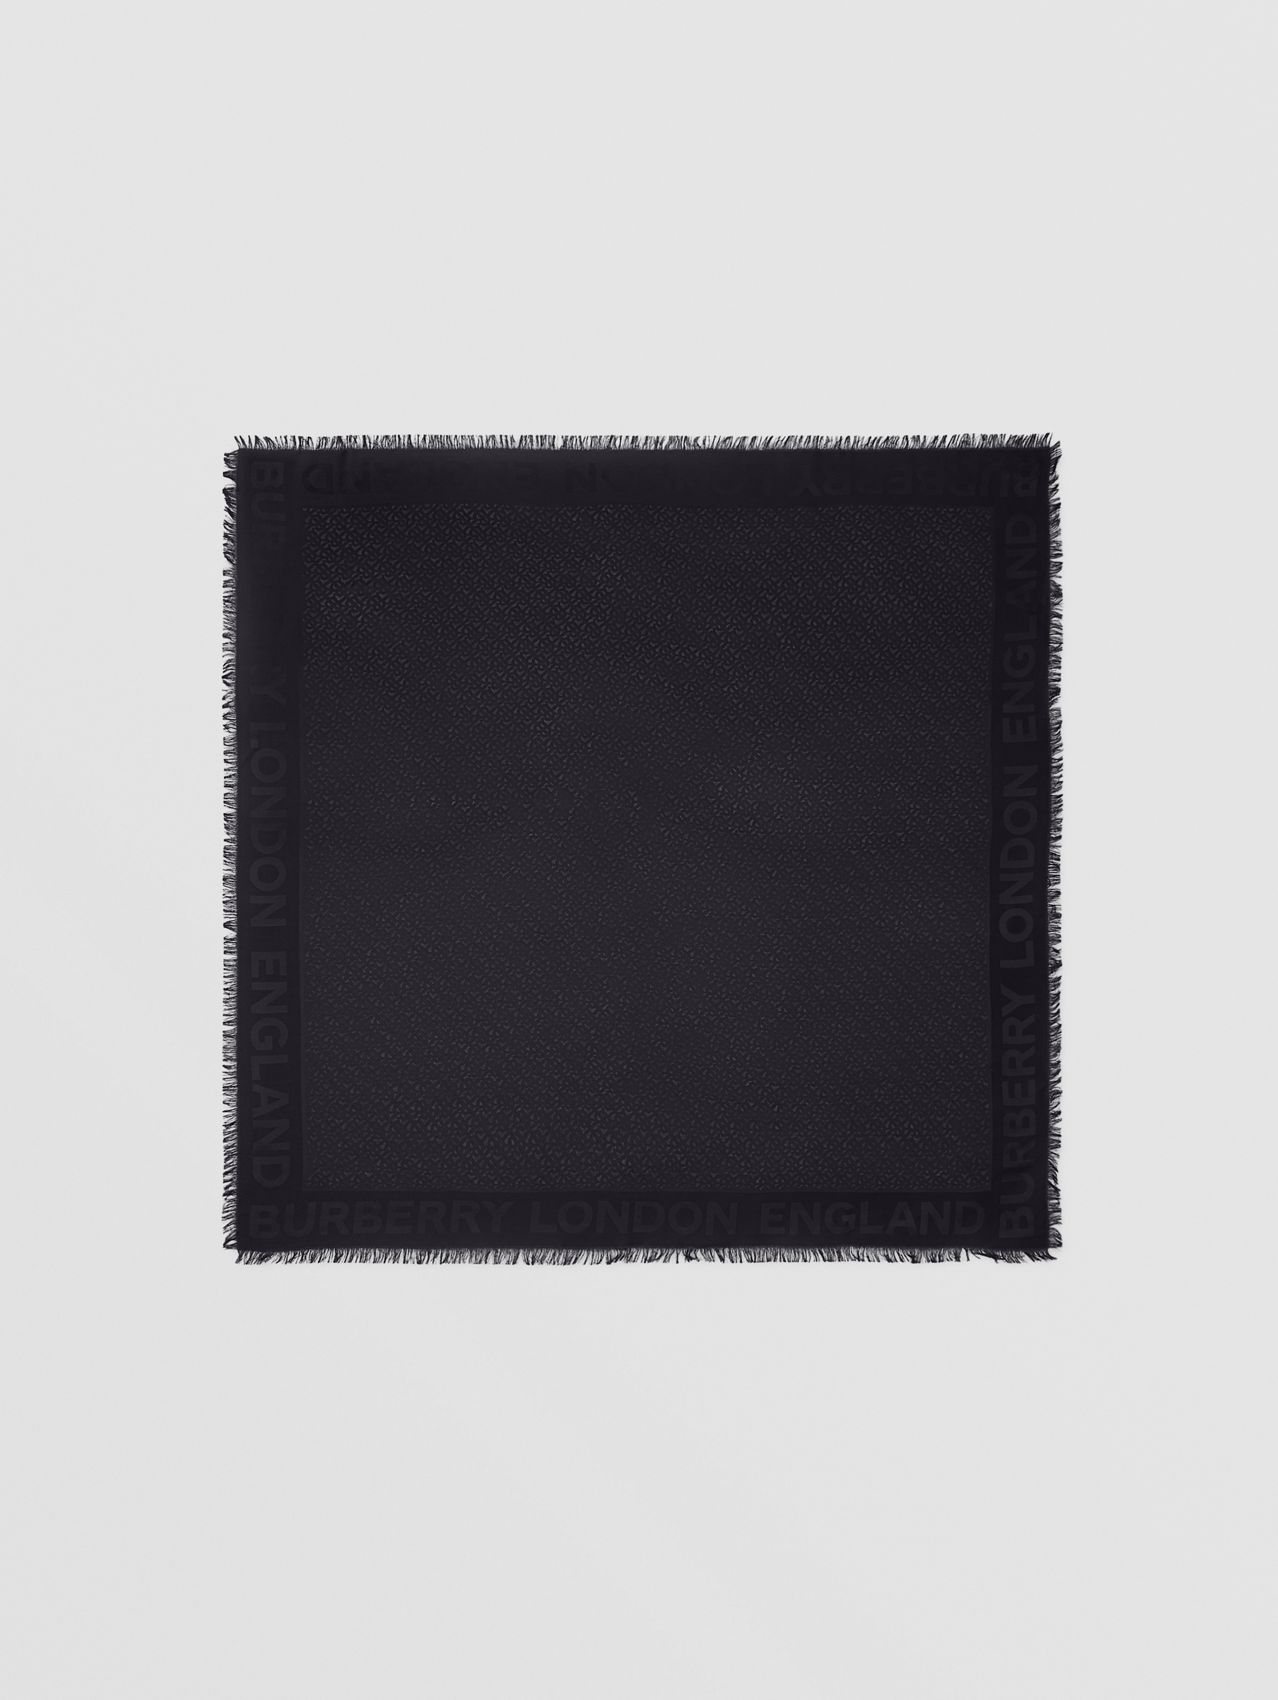 Monogram Silk Wool Jacquard Large Square Scarf in Black